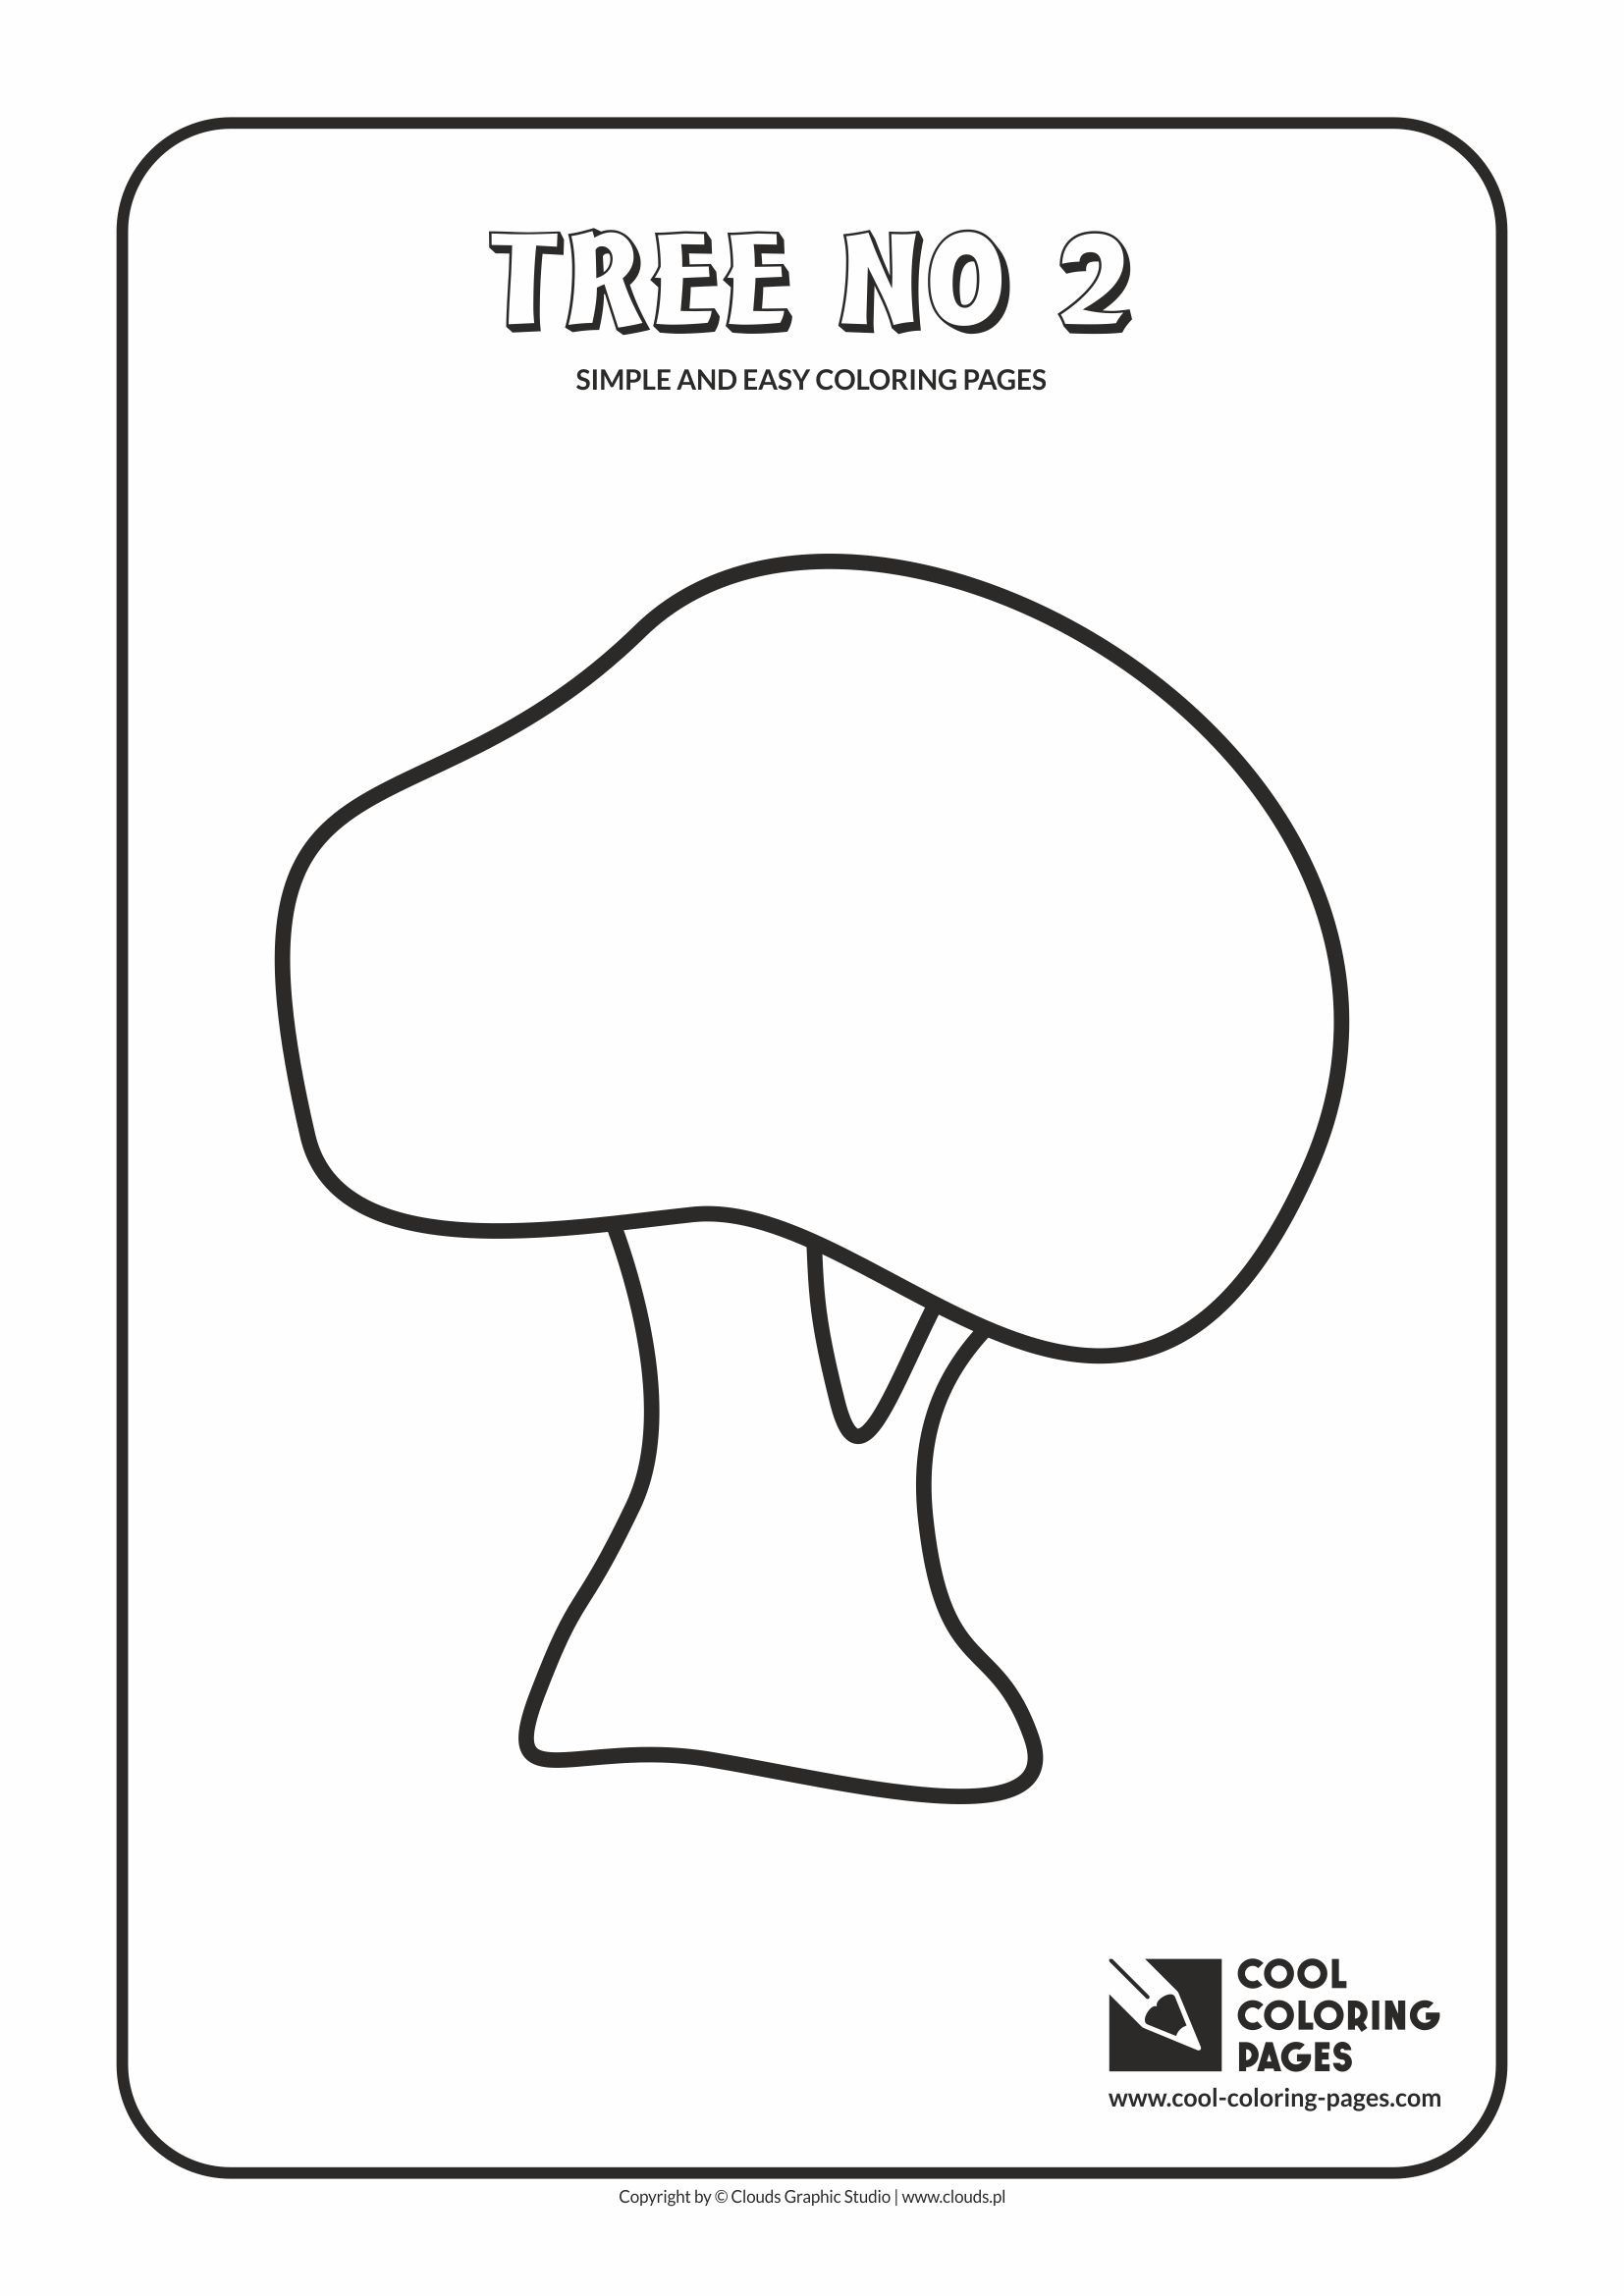 Simple and easy coloring pages for toddlers - Tree no 2